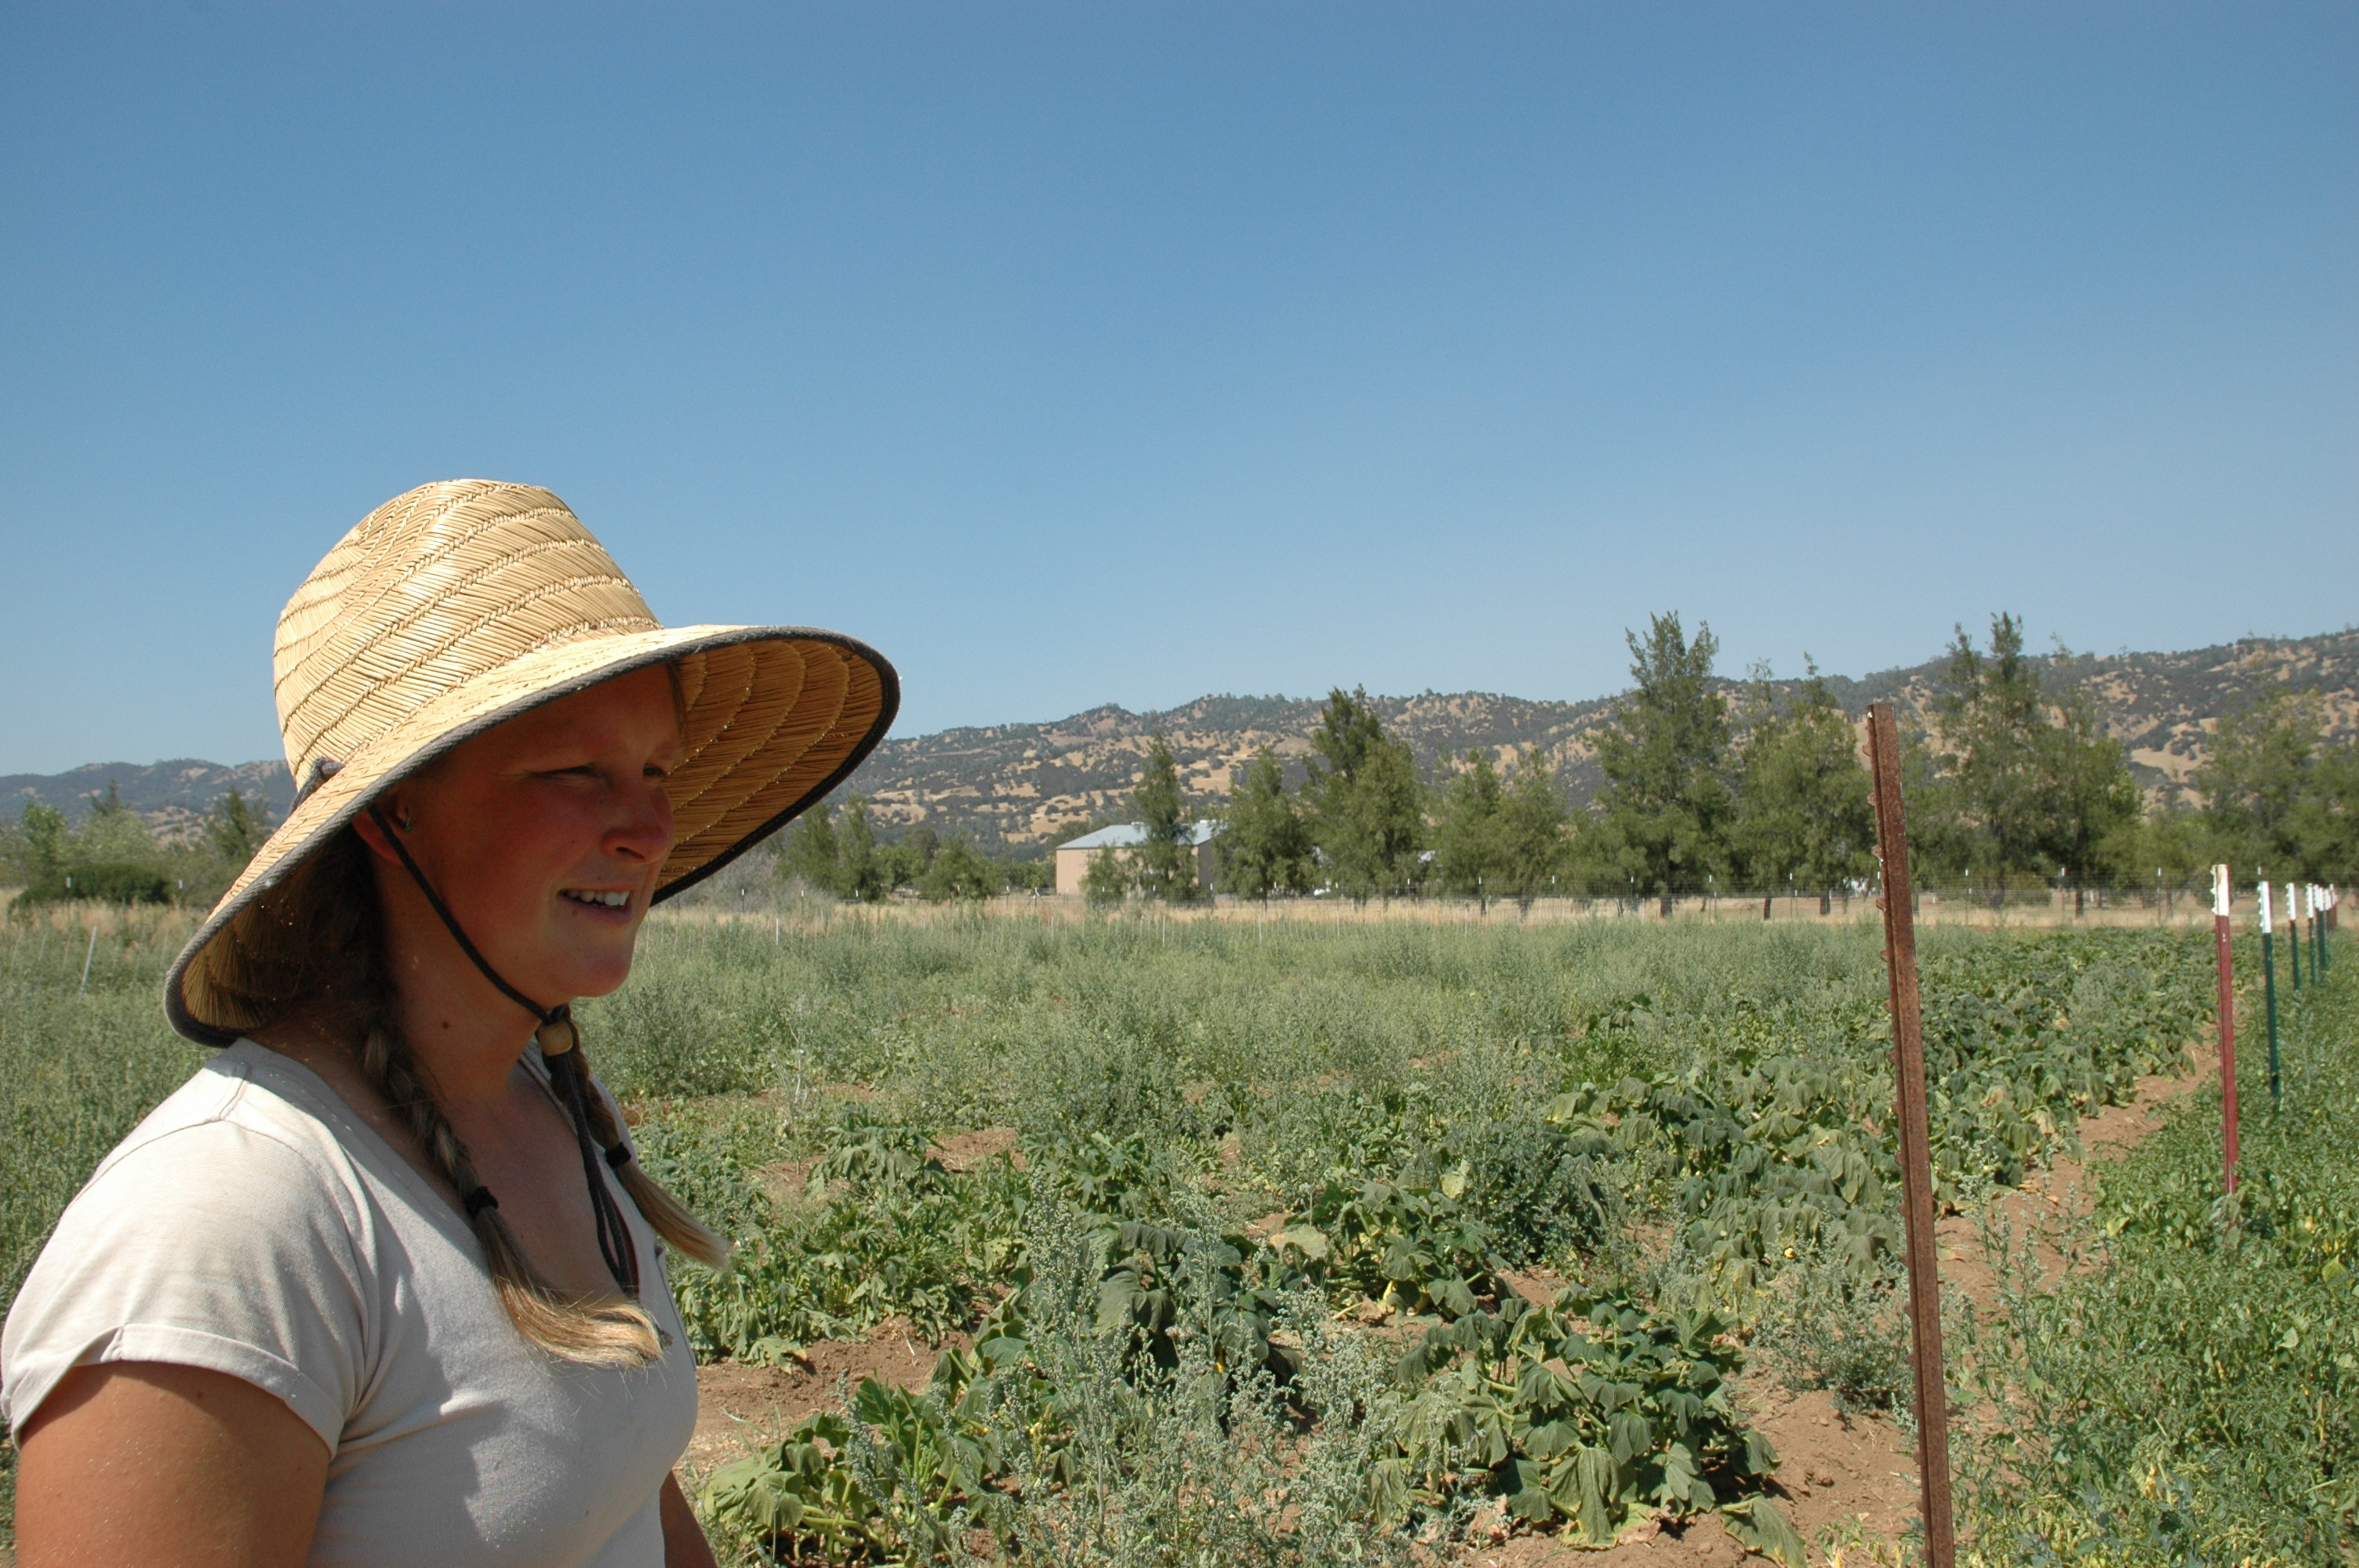 In her early 20s, Annie Hehner farms in California (photo by Elizabeth Zach)